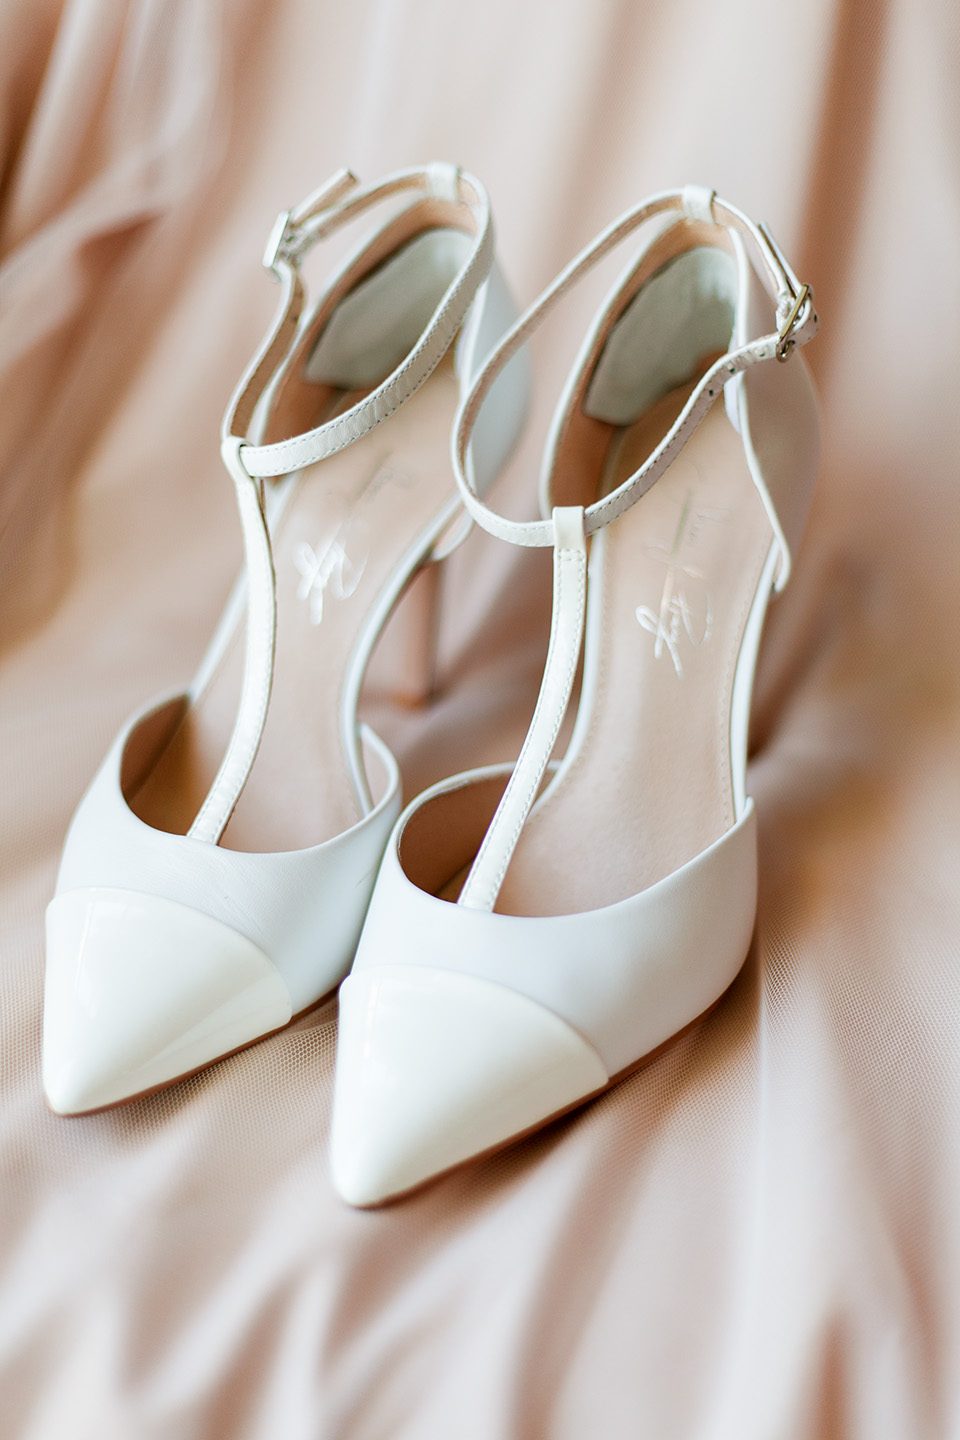 Bridal shoes photographed on the wedding day at The Vinoy in St. Pete, Florida | Debra Eby Photography Co.